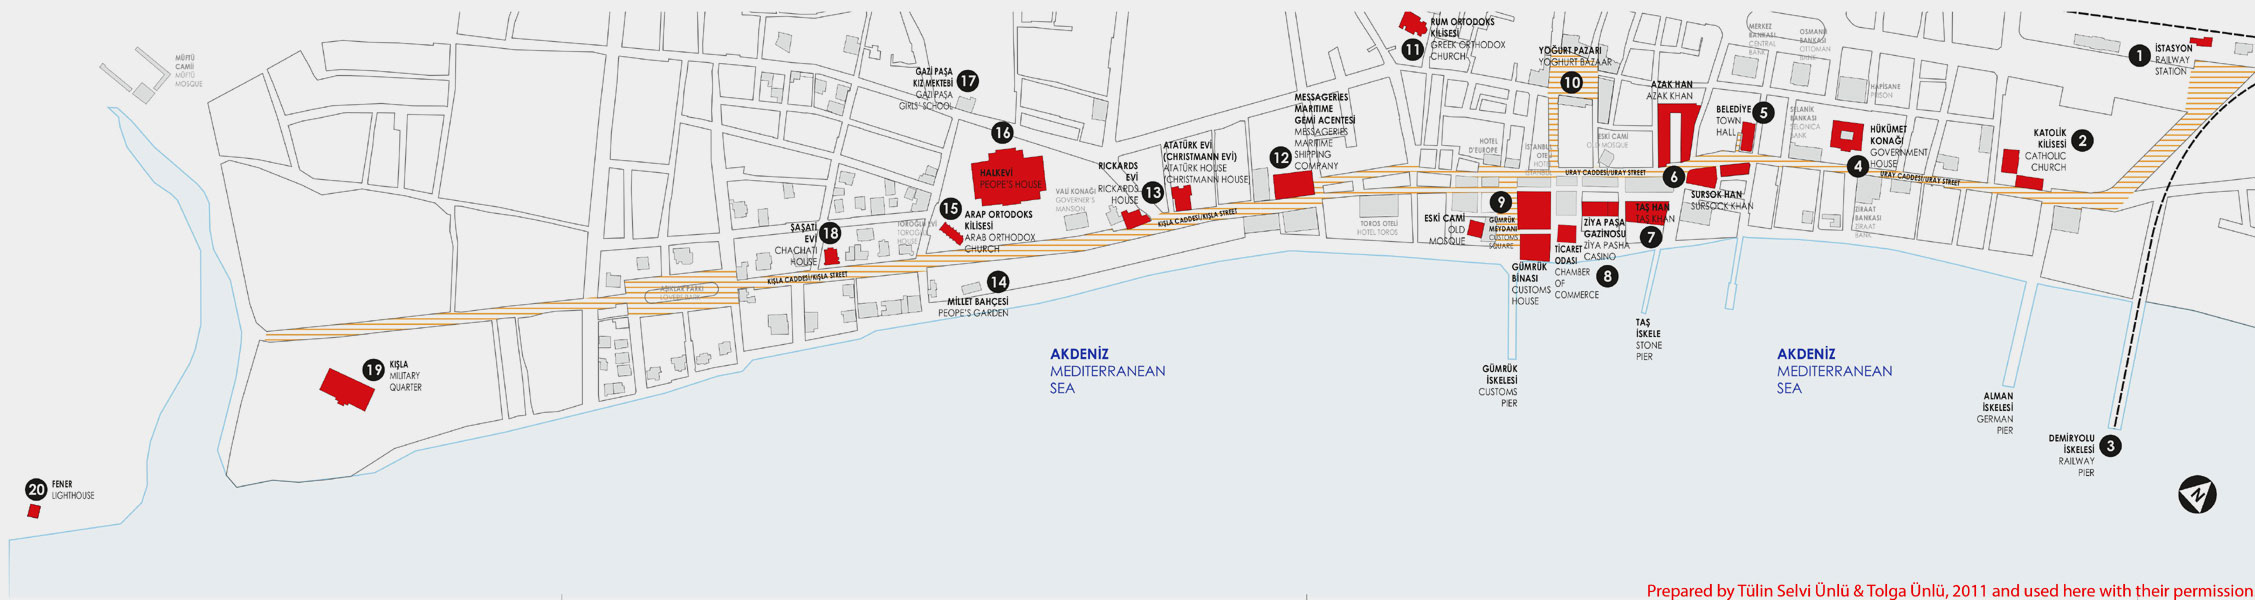 Panorama Map Of The Mersin Seafront Showing Some Of The Prominent - Mersin map